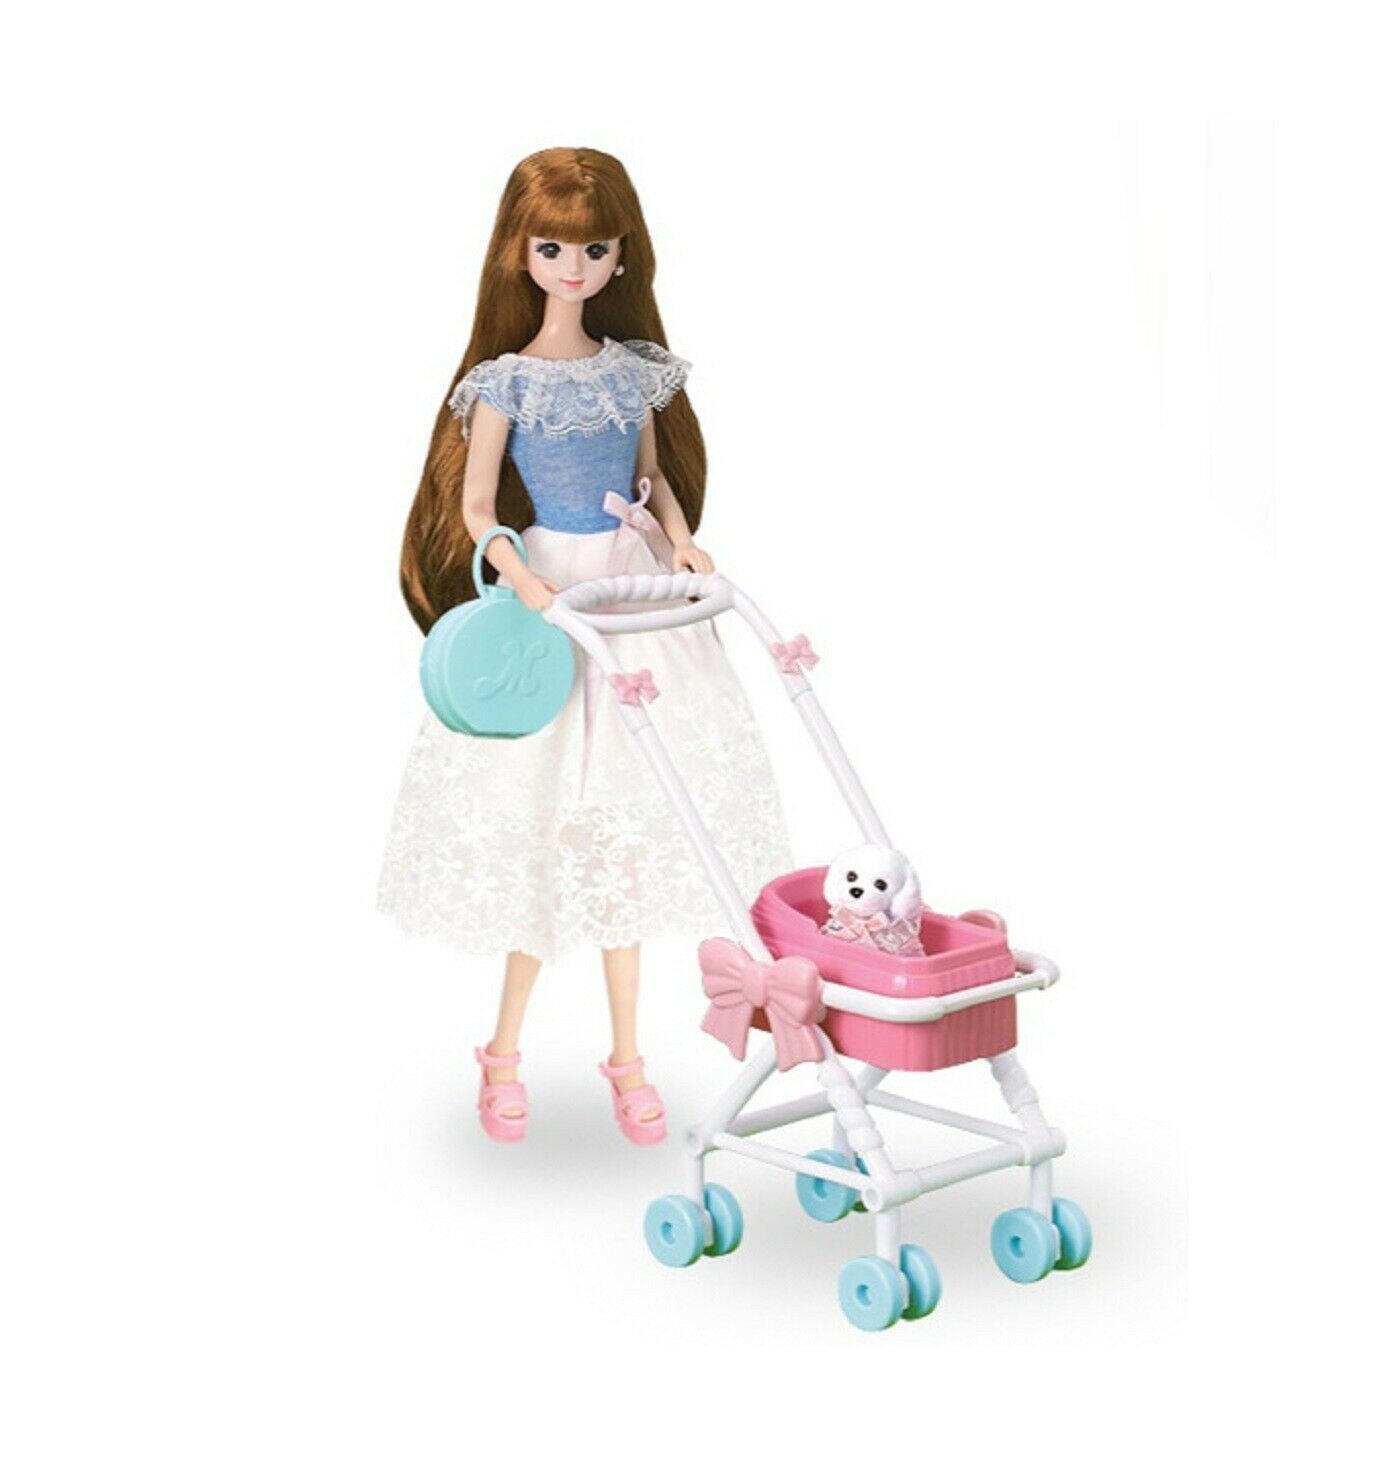 Mimi World Mimi and Shushu Let's go to The Park Figure Toy Doll Rollplay Playset